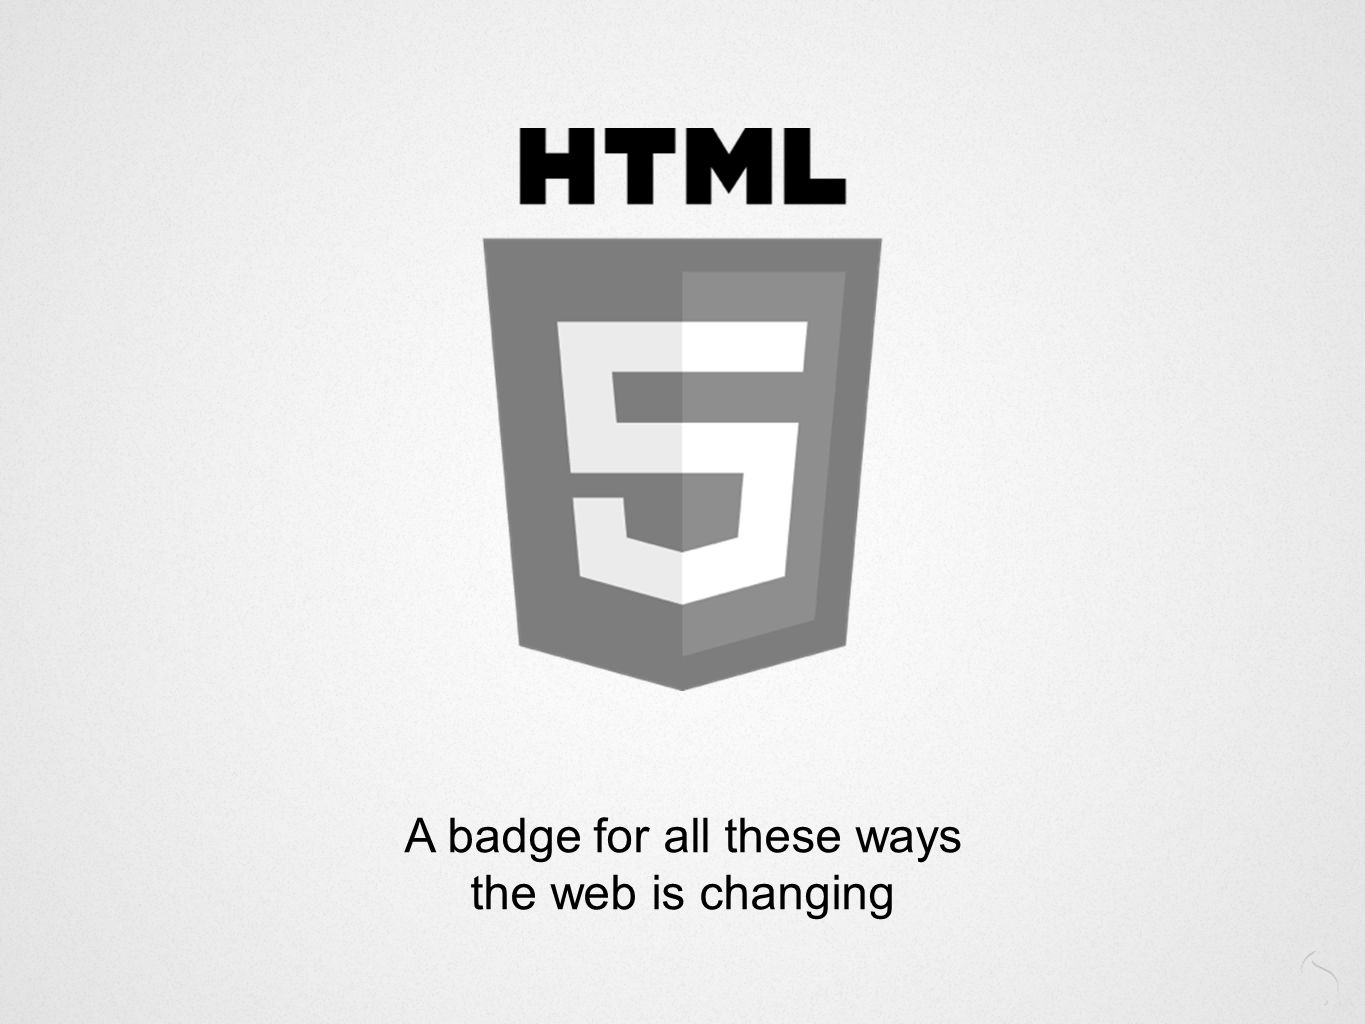 A badge for all these ways the web is changing